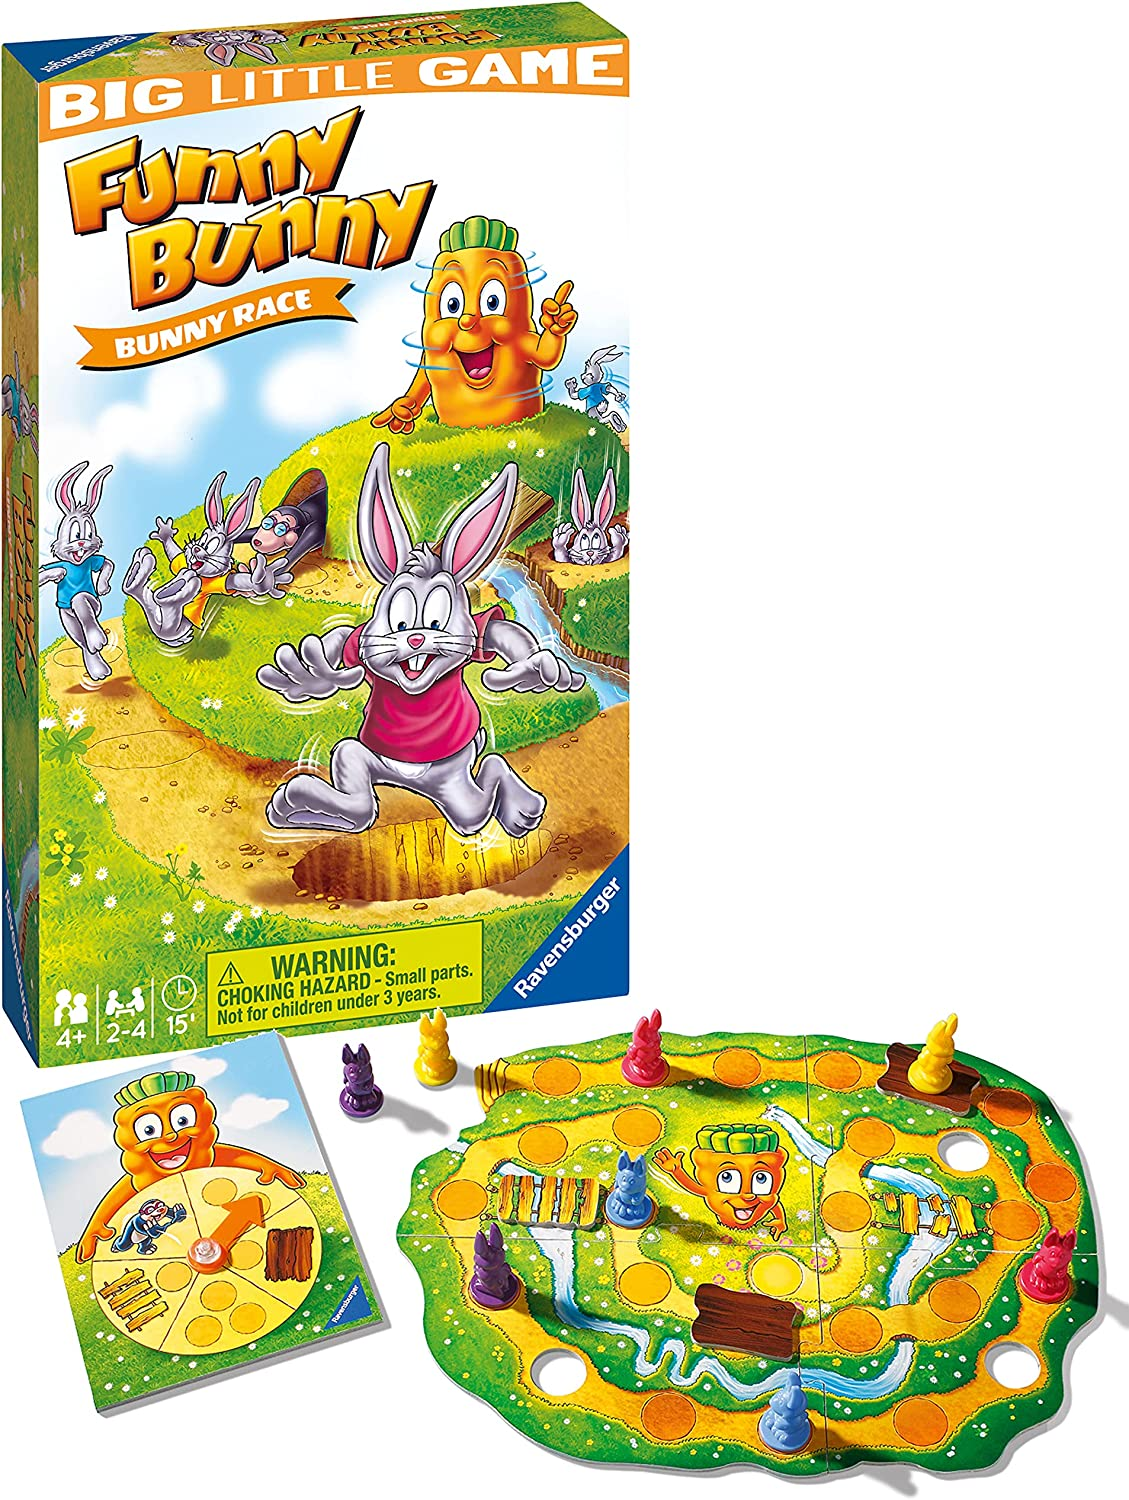 Ravensburger Max 72% OFF Funny service Bunny Travel Game for Children 4 Years Ages a